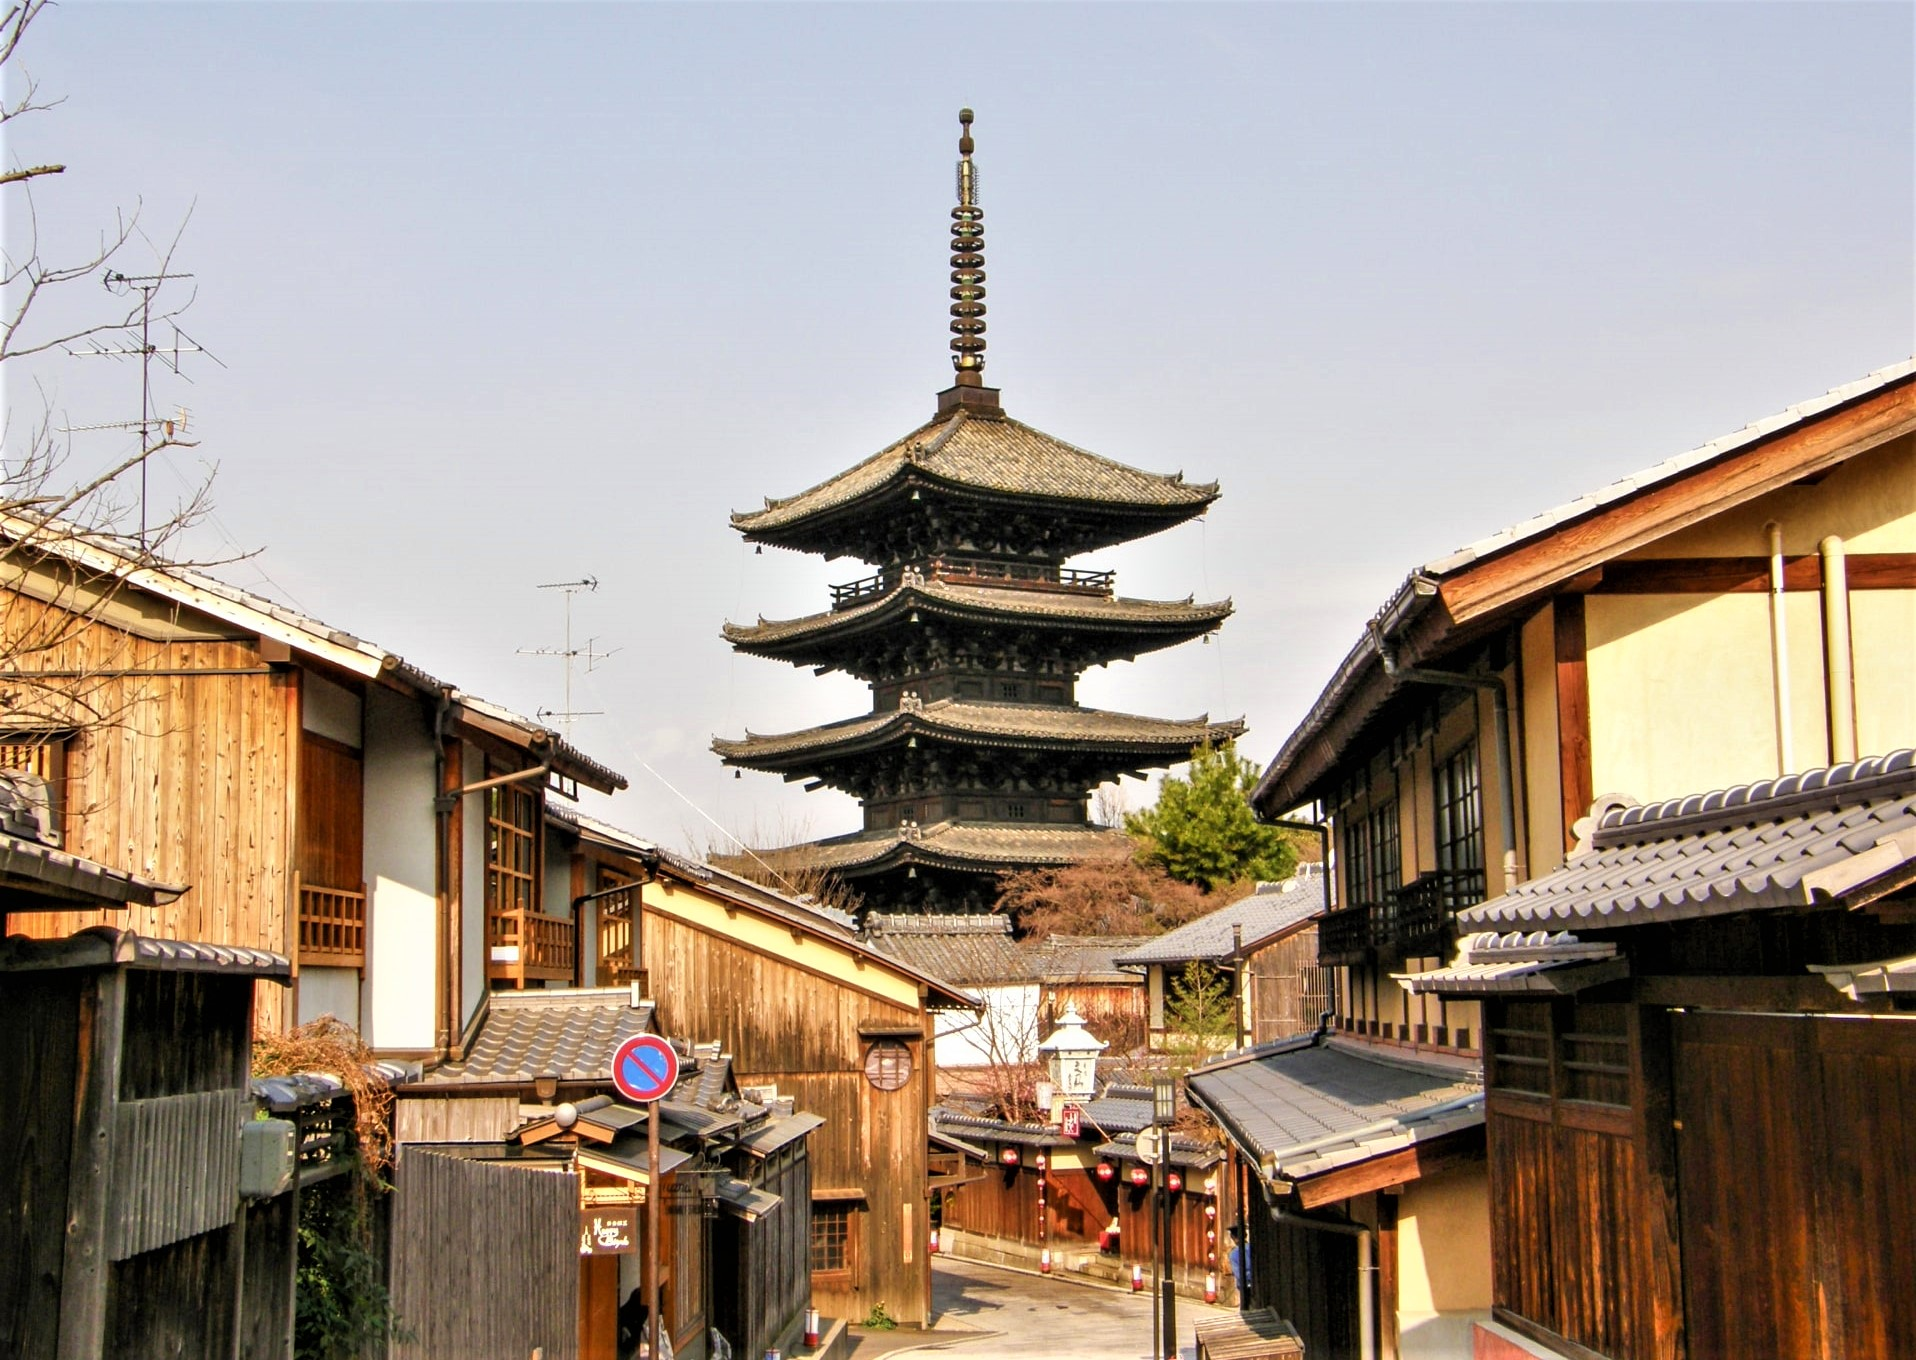 A street of Higashiyama district with the view of Yasaka Pagoda